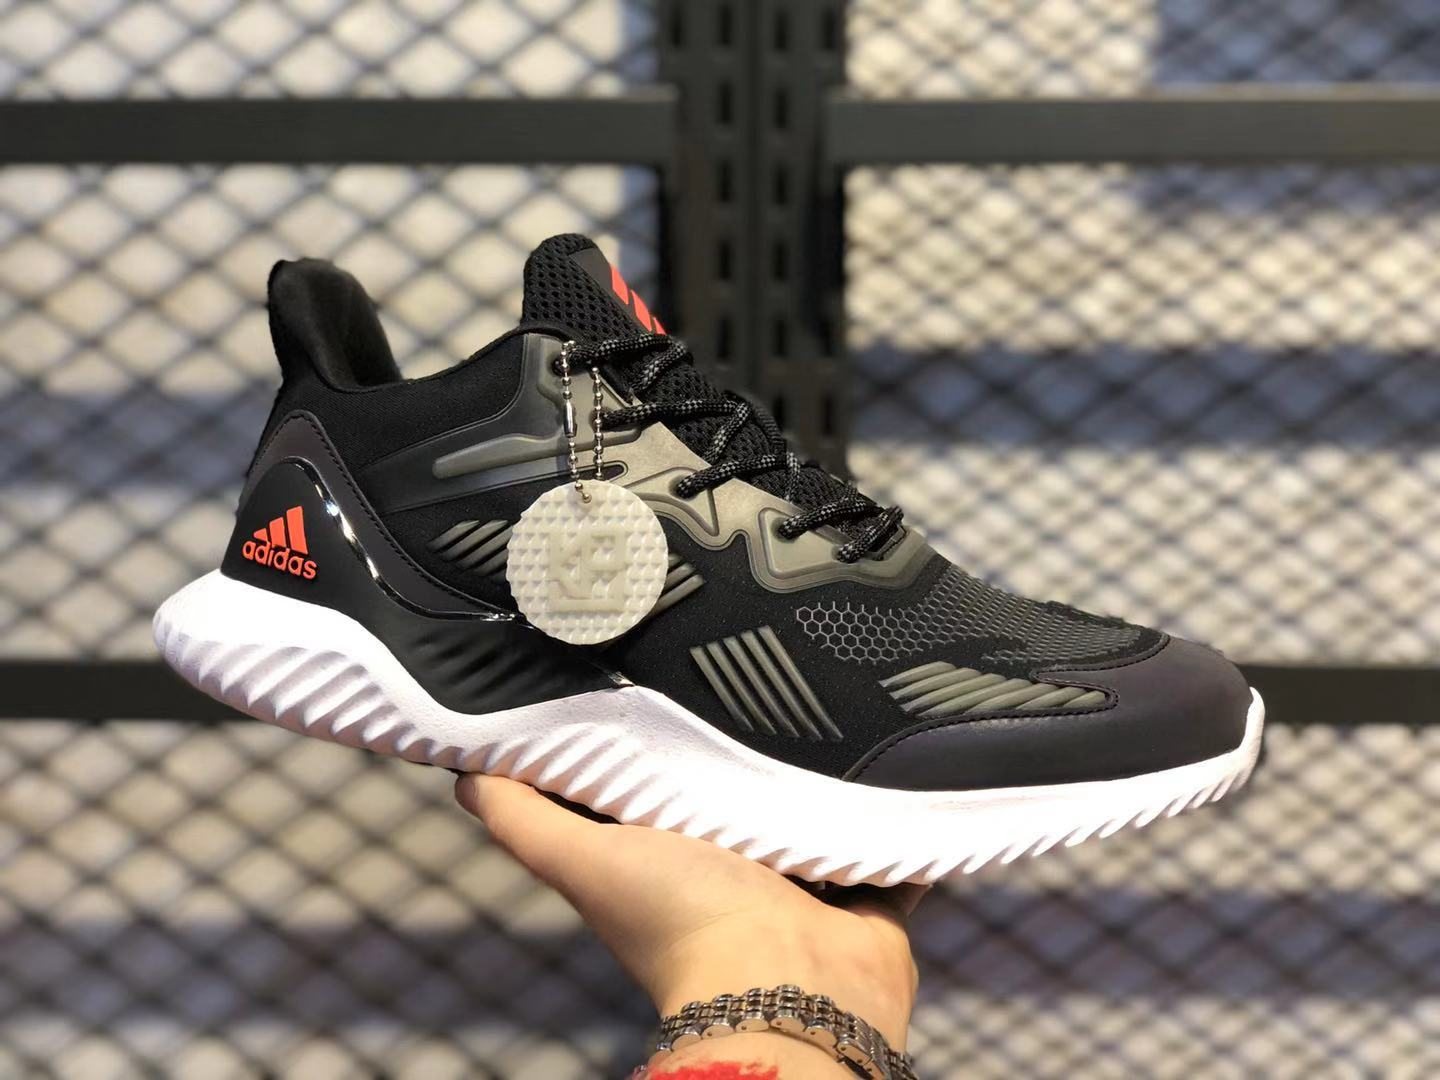 Adidas Alphabounce Beyond Black Tech Core Black/Olive Green Free Shipping